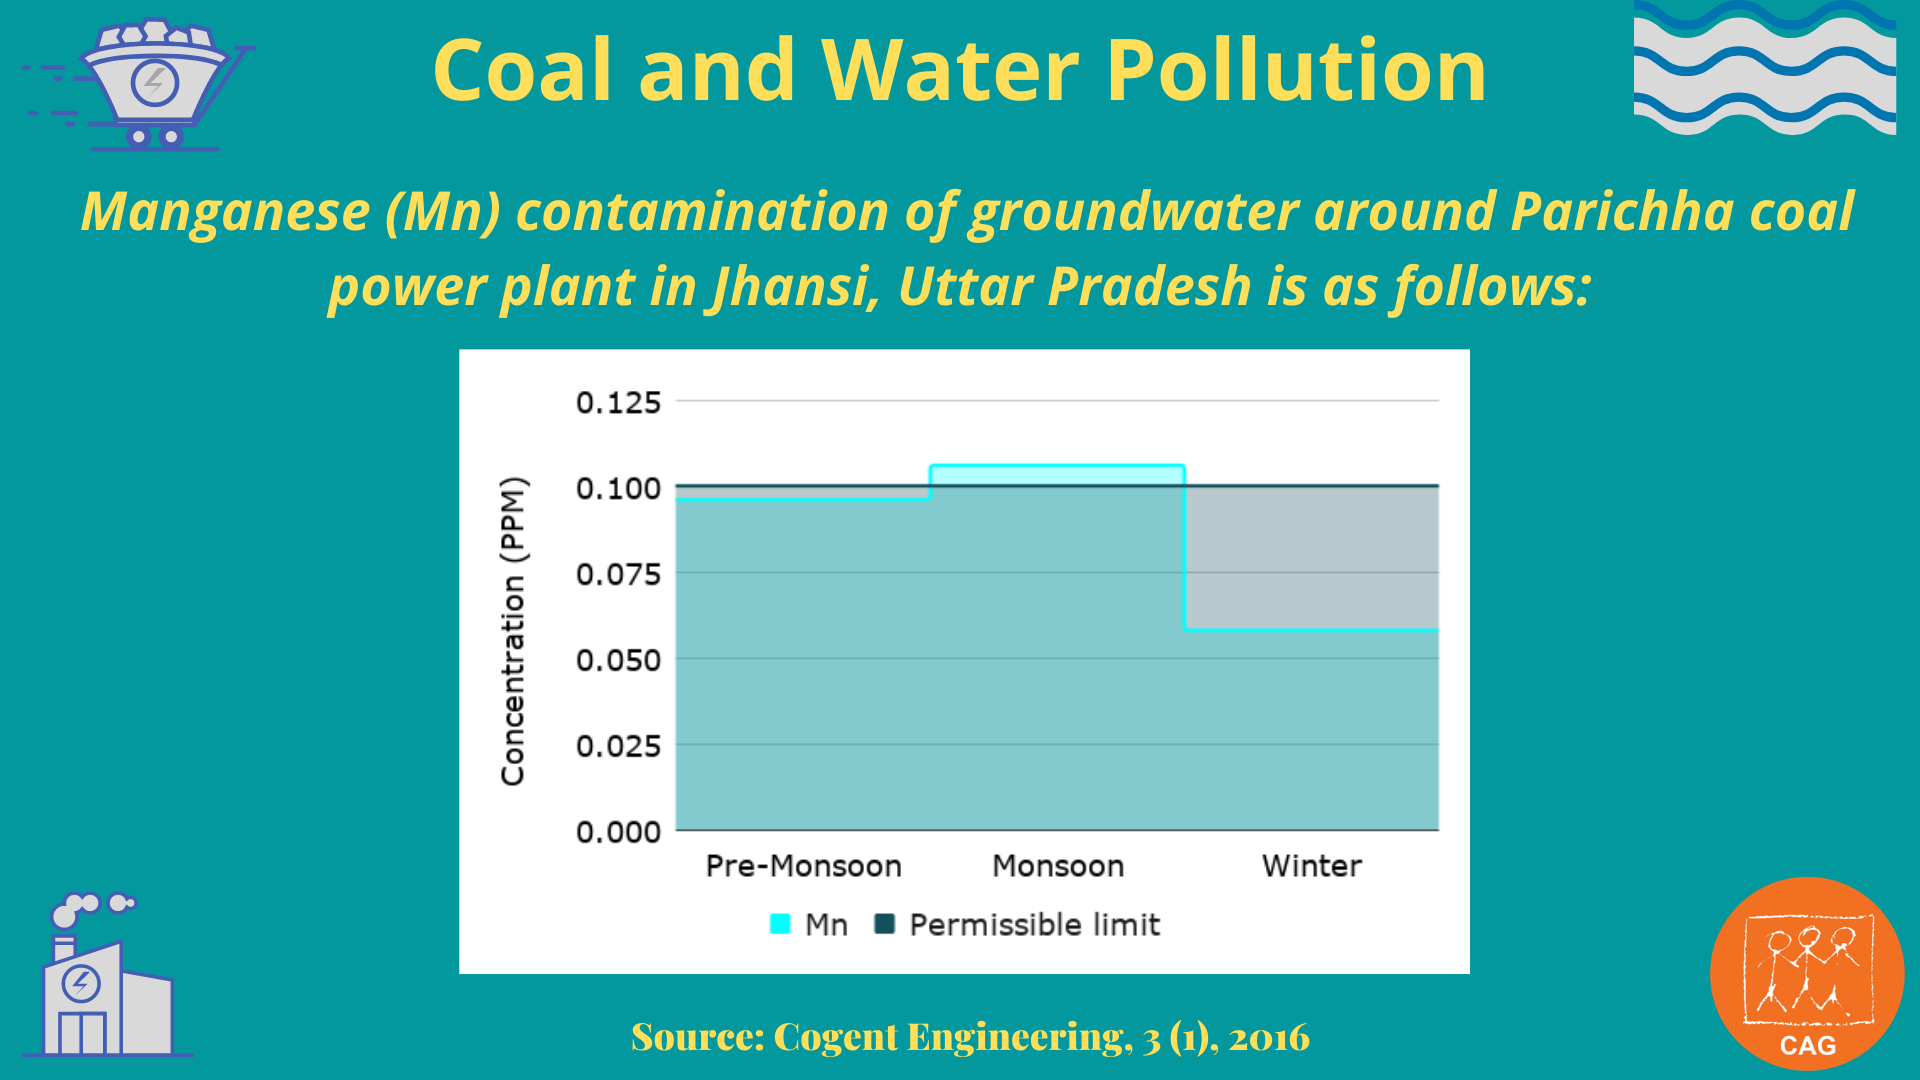 Coal and water pollution 4